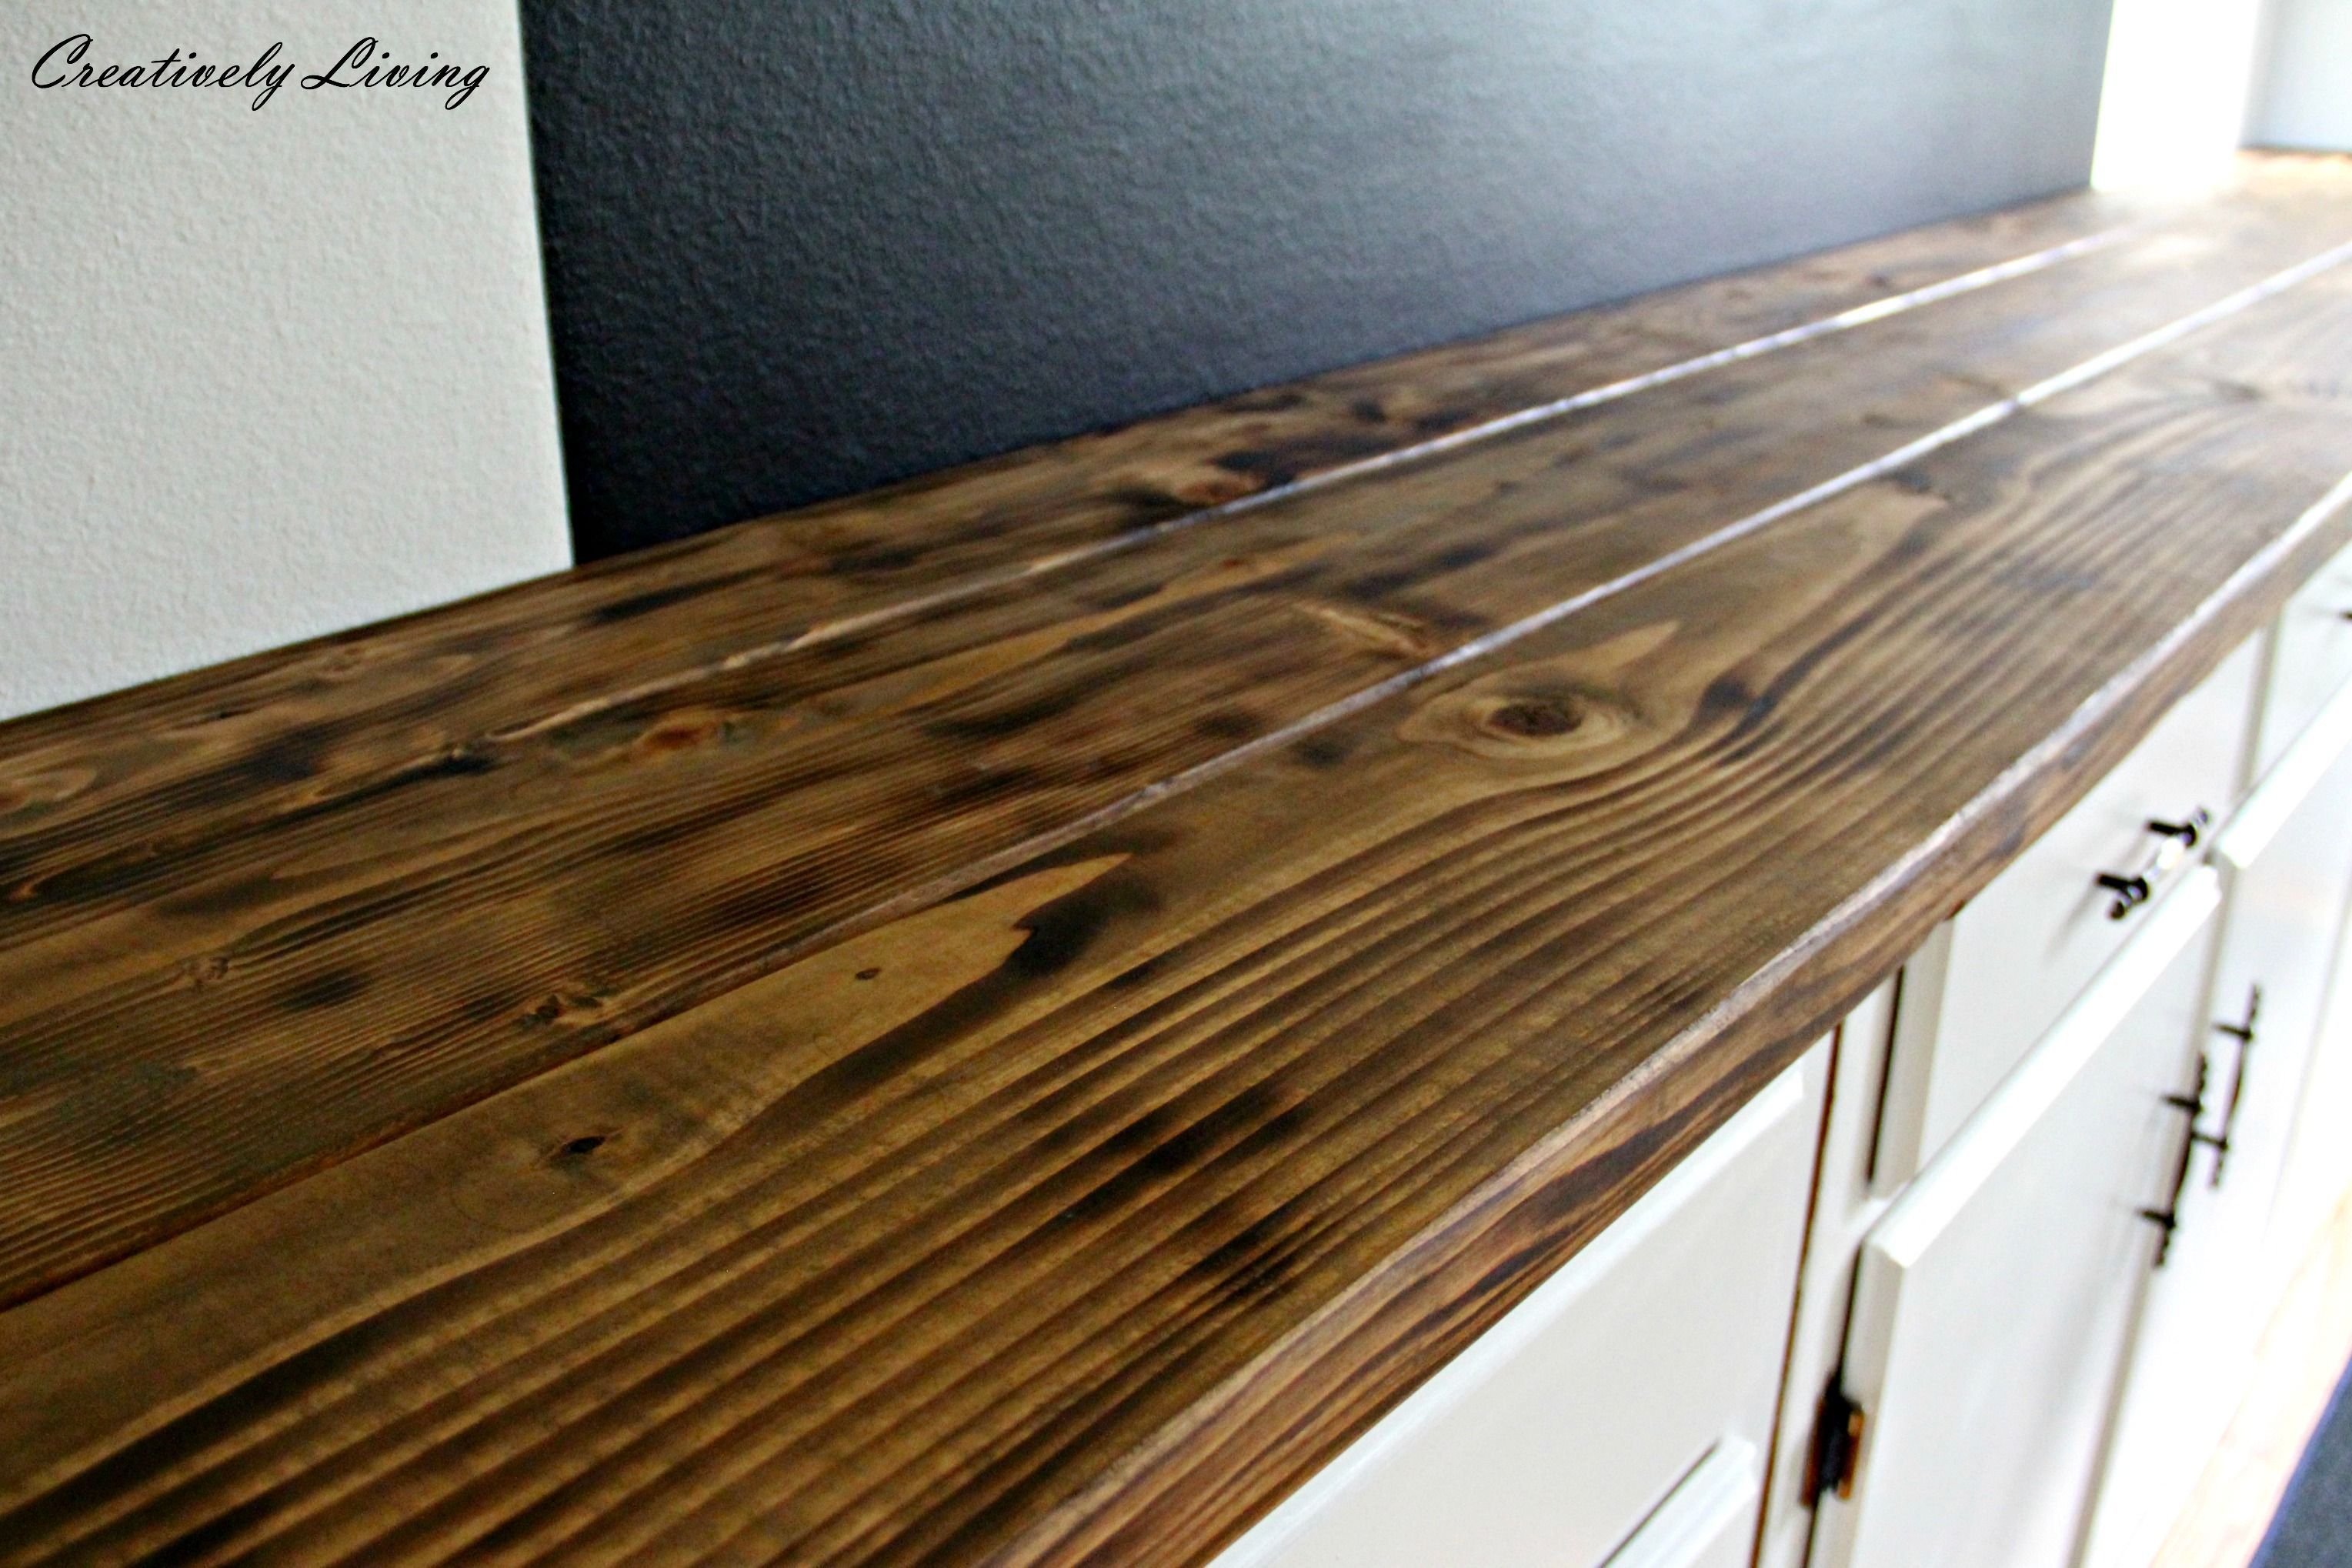 Torched Diy Rustic Wood Counter Top For Under 50 By Creatively Living Diy Wood Counters Diy Wood Countertops Wood Countertops